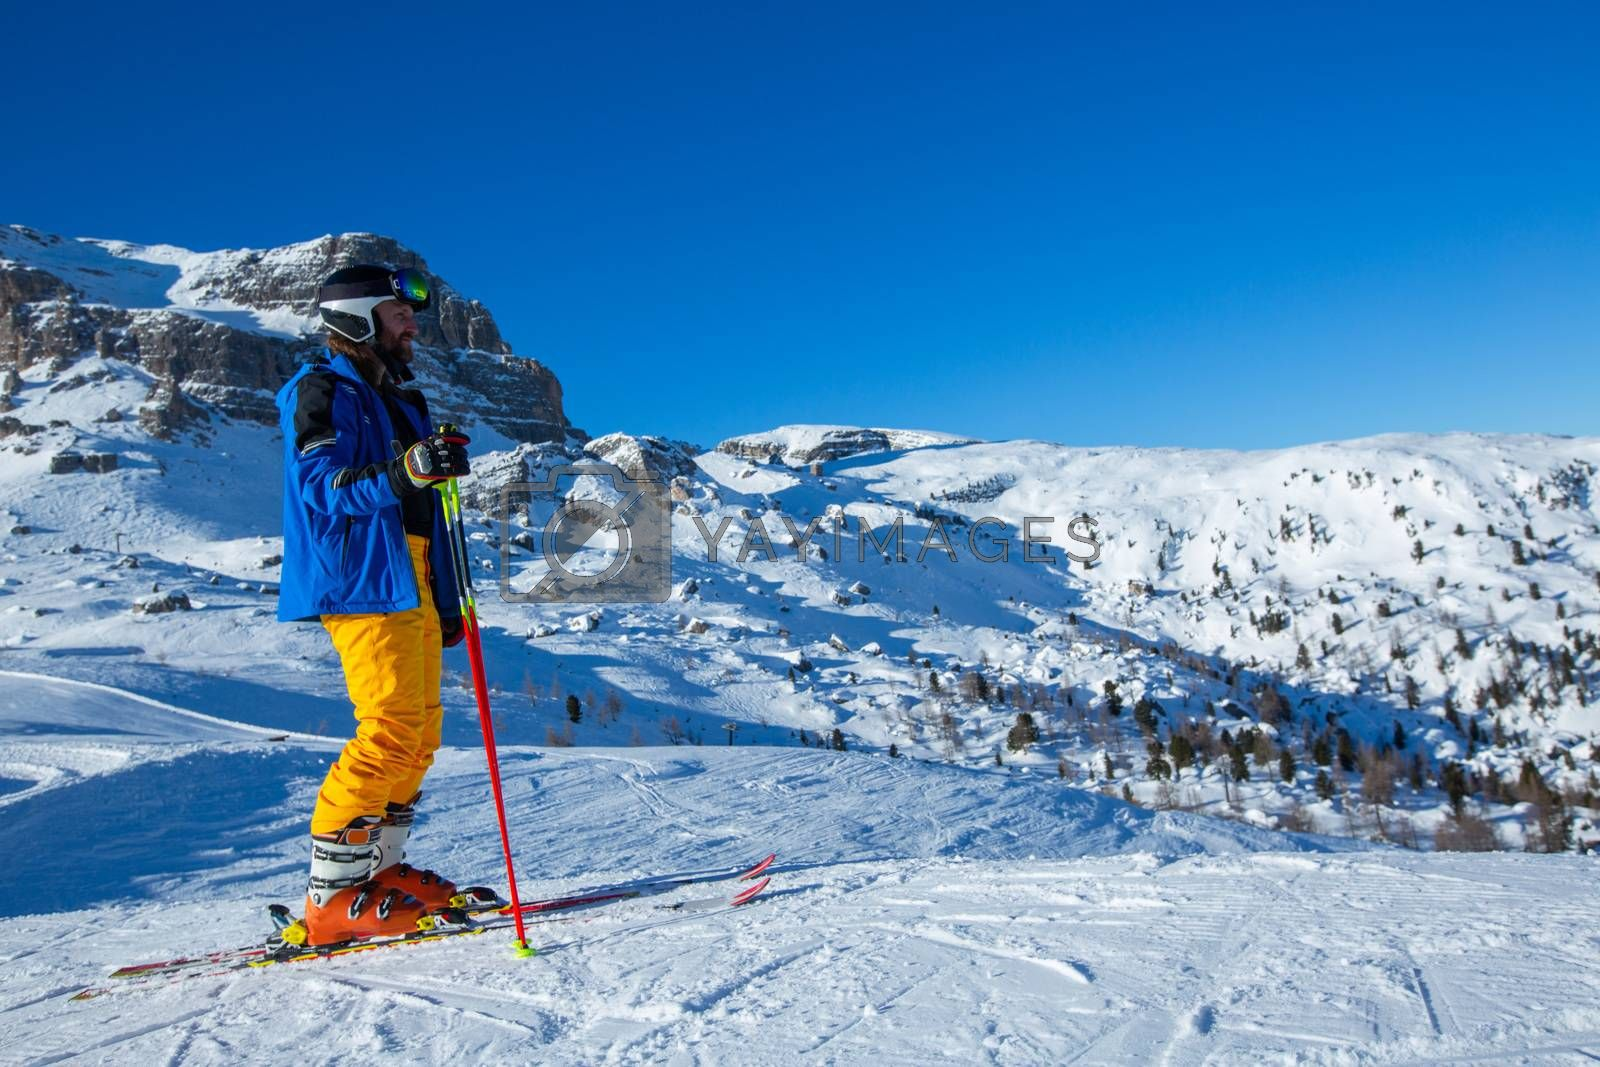 Alpine skier stand on slope in winter mountains Dolomities Italy in beautiful alps Cortina d'Ampezzo Cinque torri mountain peaks famous landscape skiing resort area